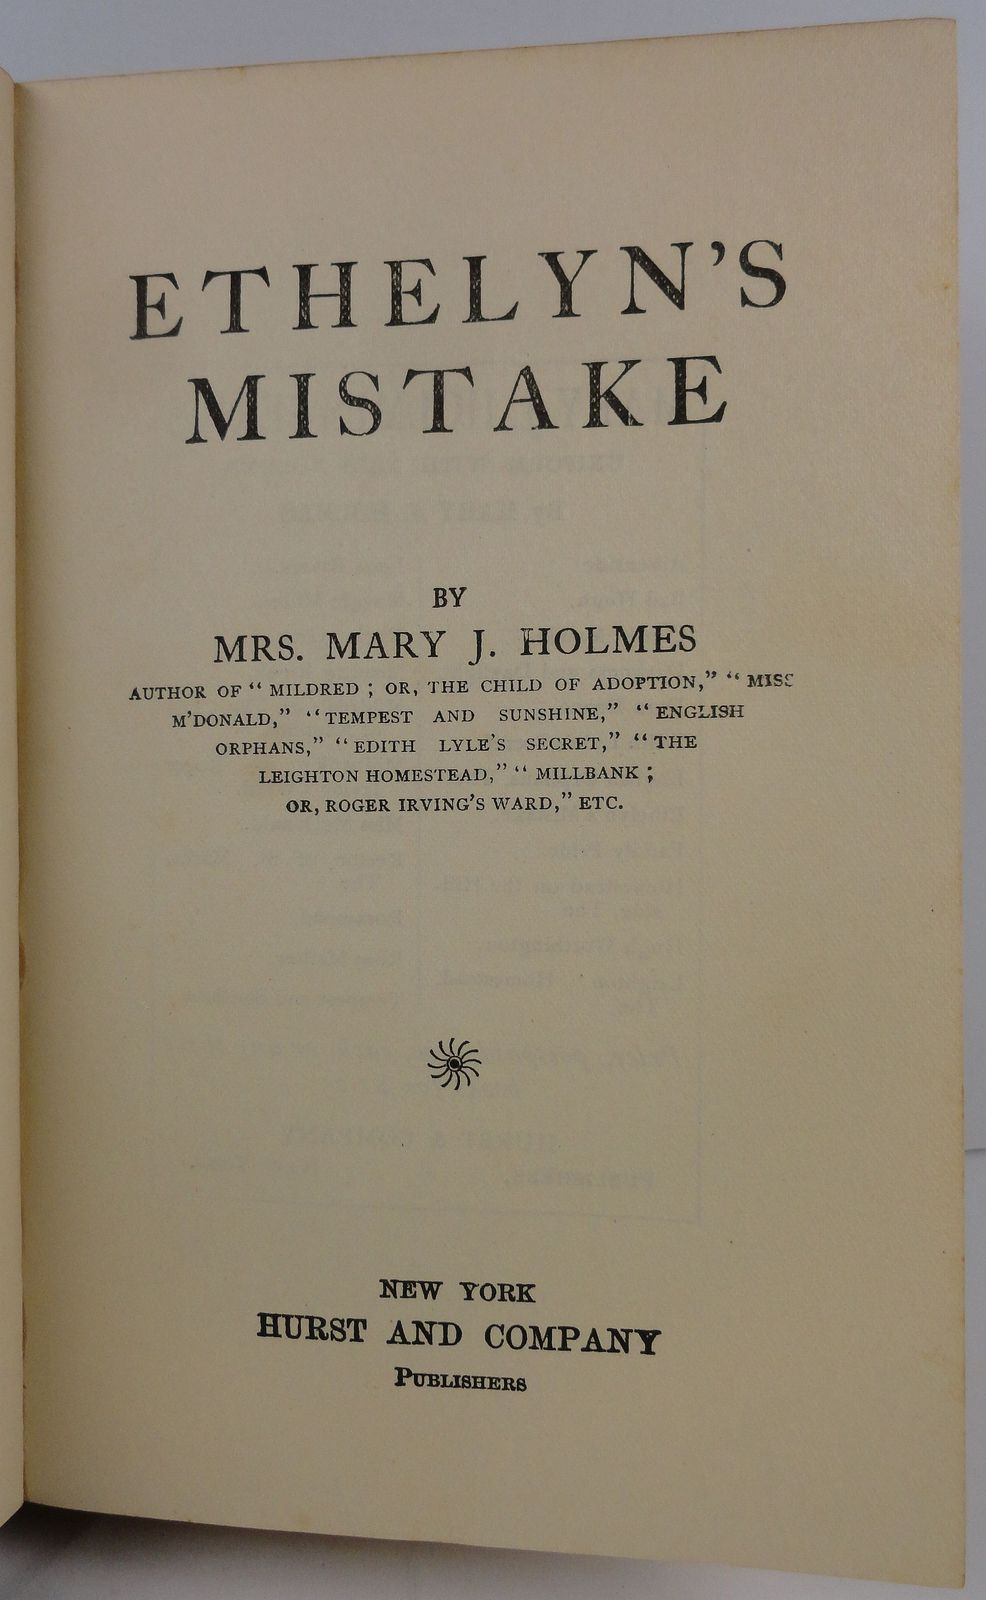 Ethelyn's Mistake by Mrs. Mary J. Holmes Hurst and Company